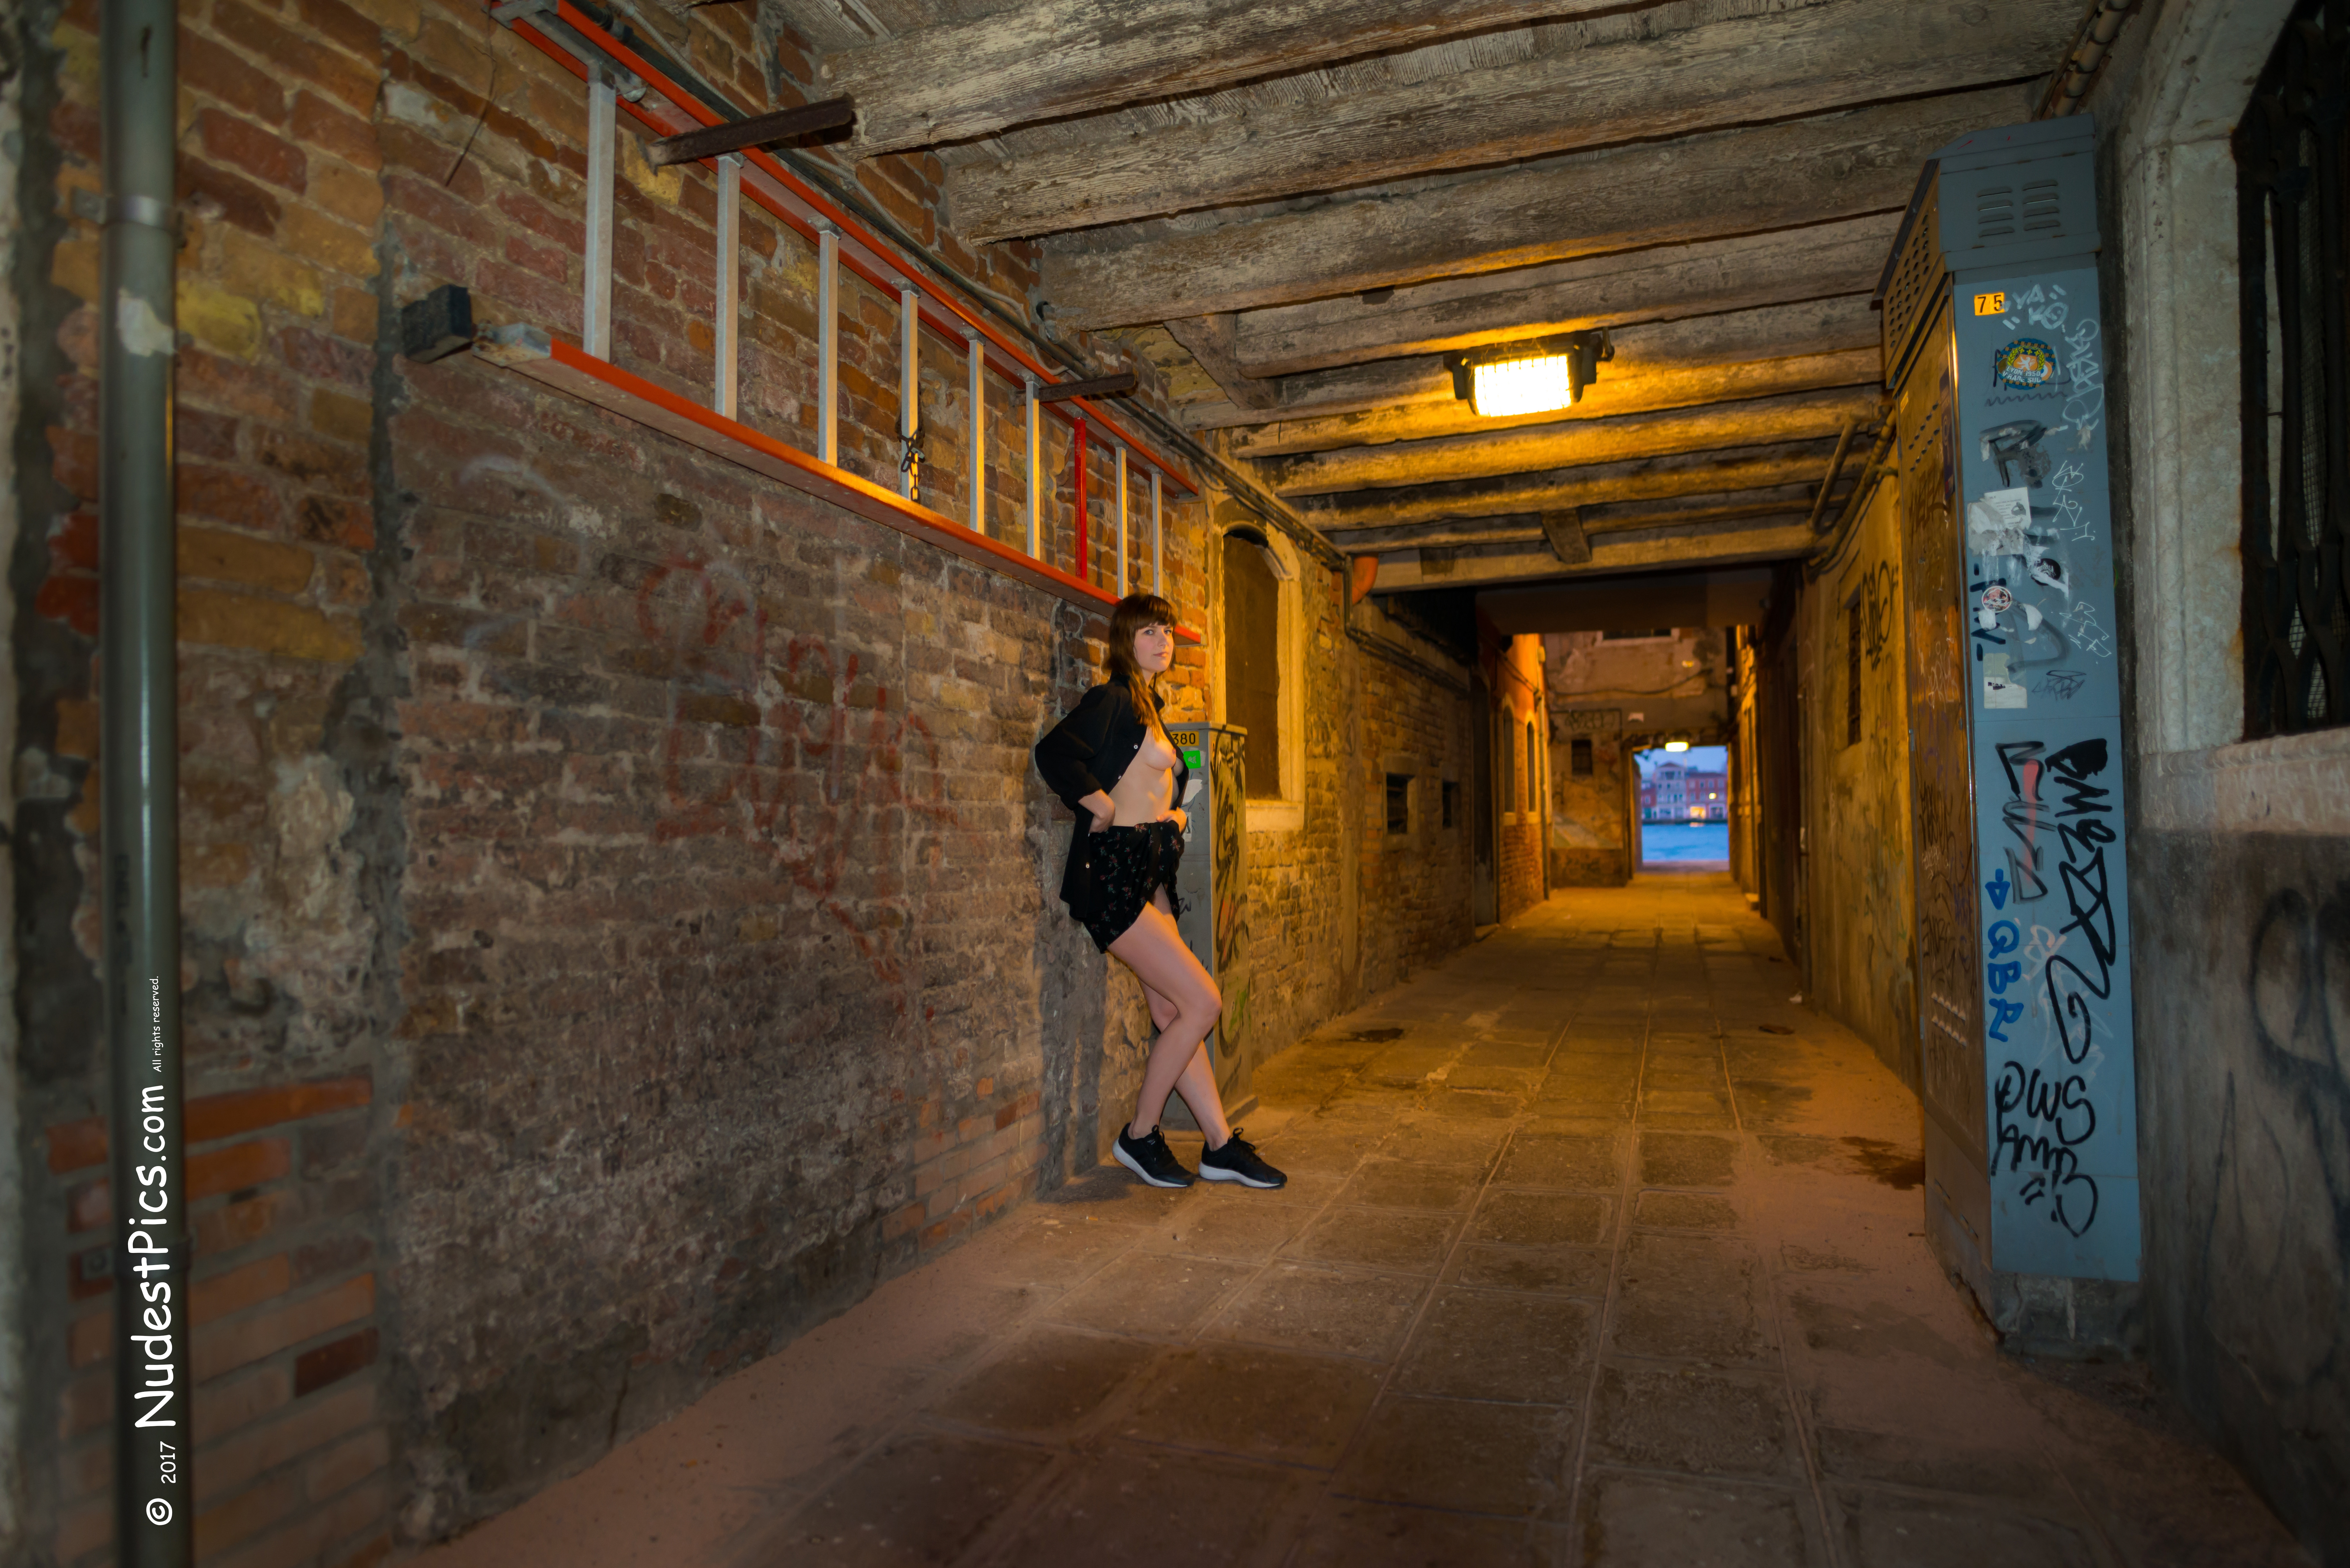 Tourist Girl Flashing Breasts in Venice